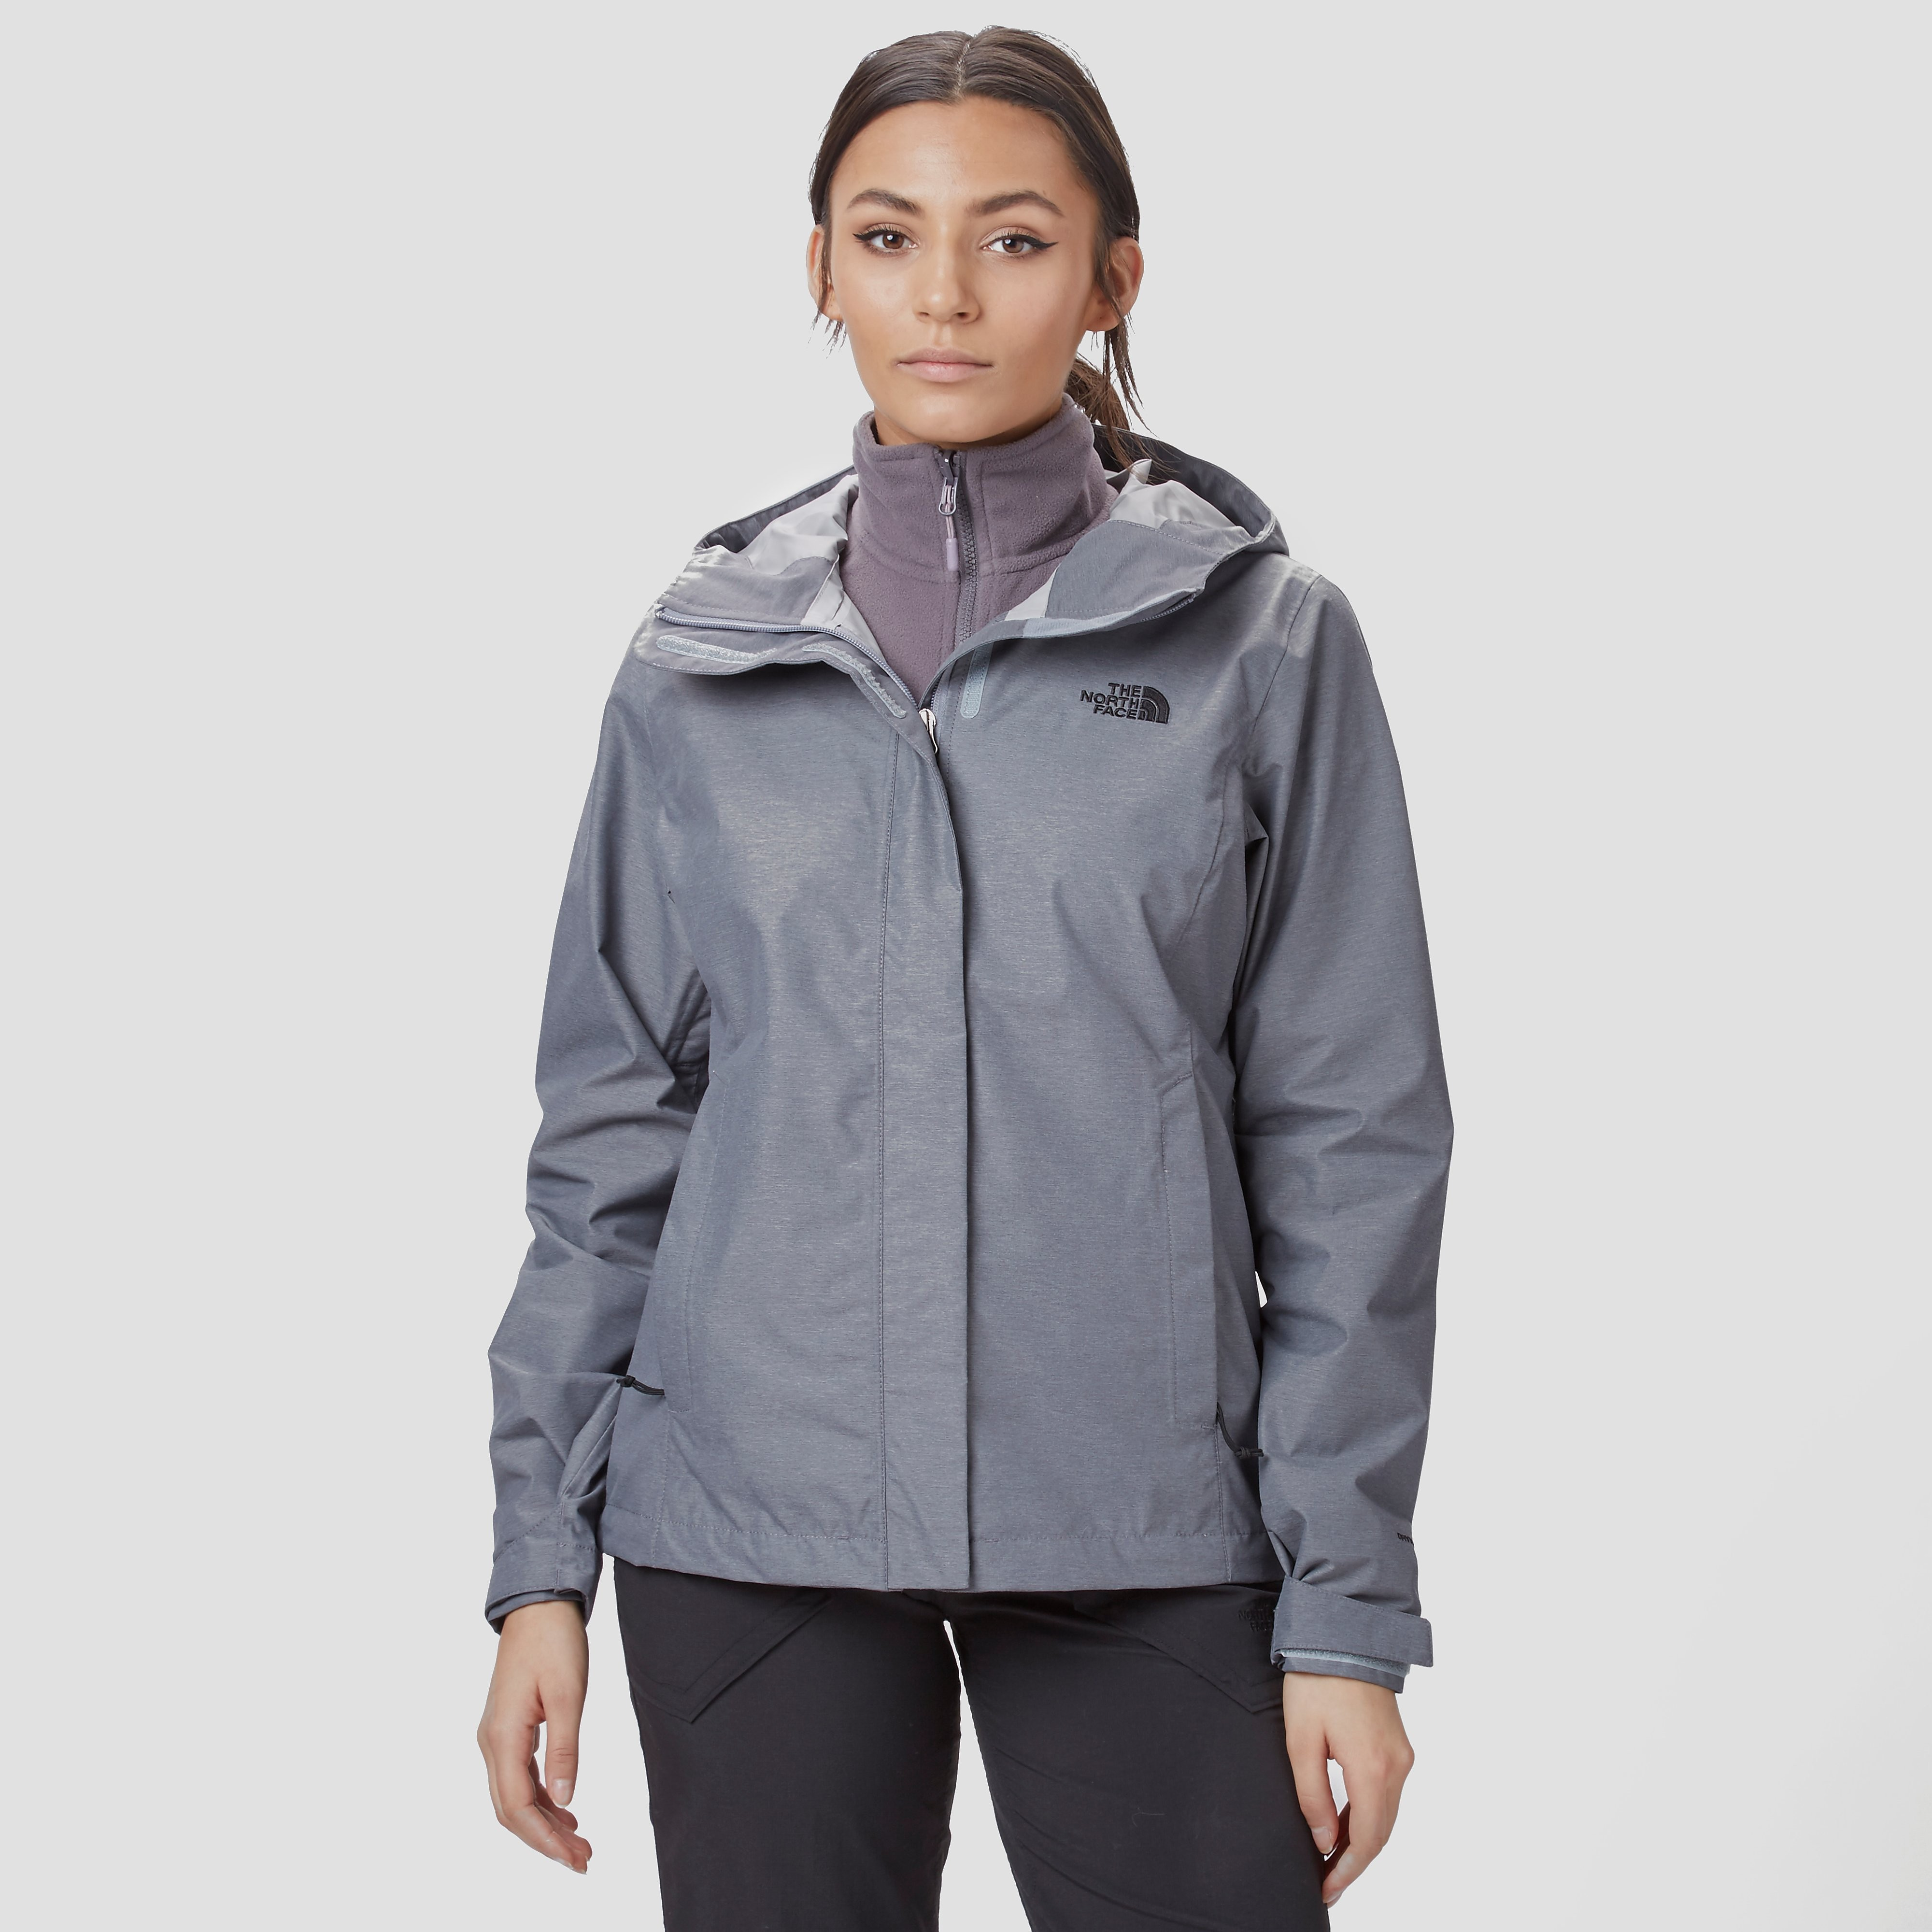 The North Face Venture 2 DryVent Women's Jacket